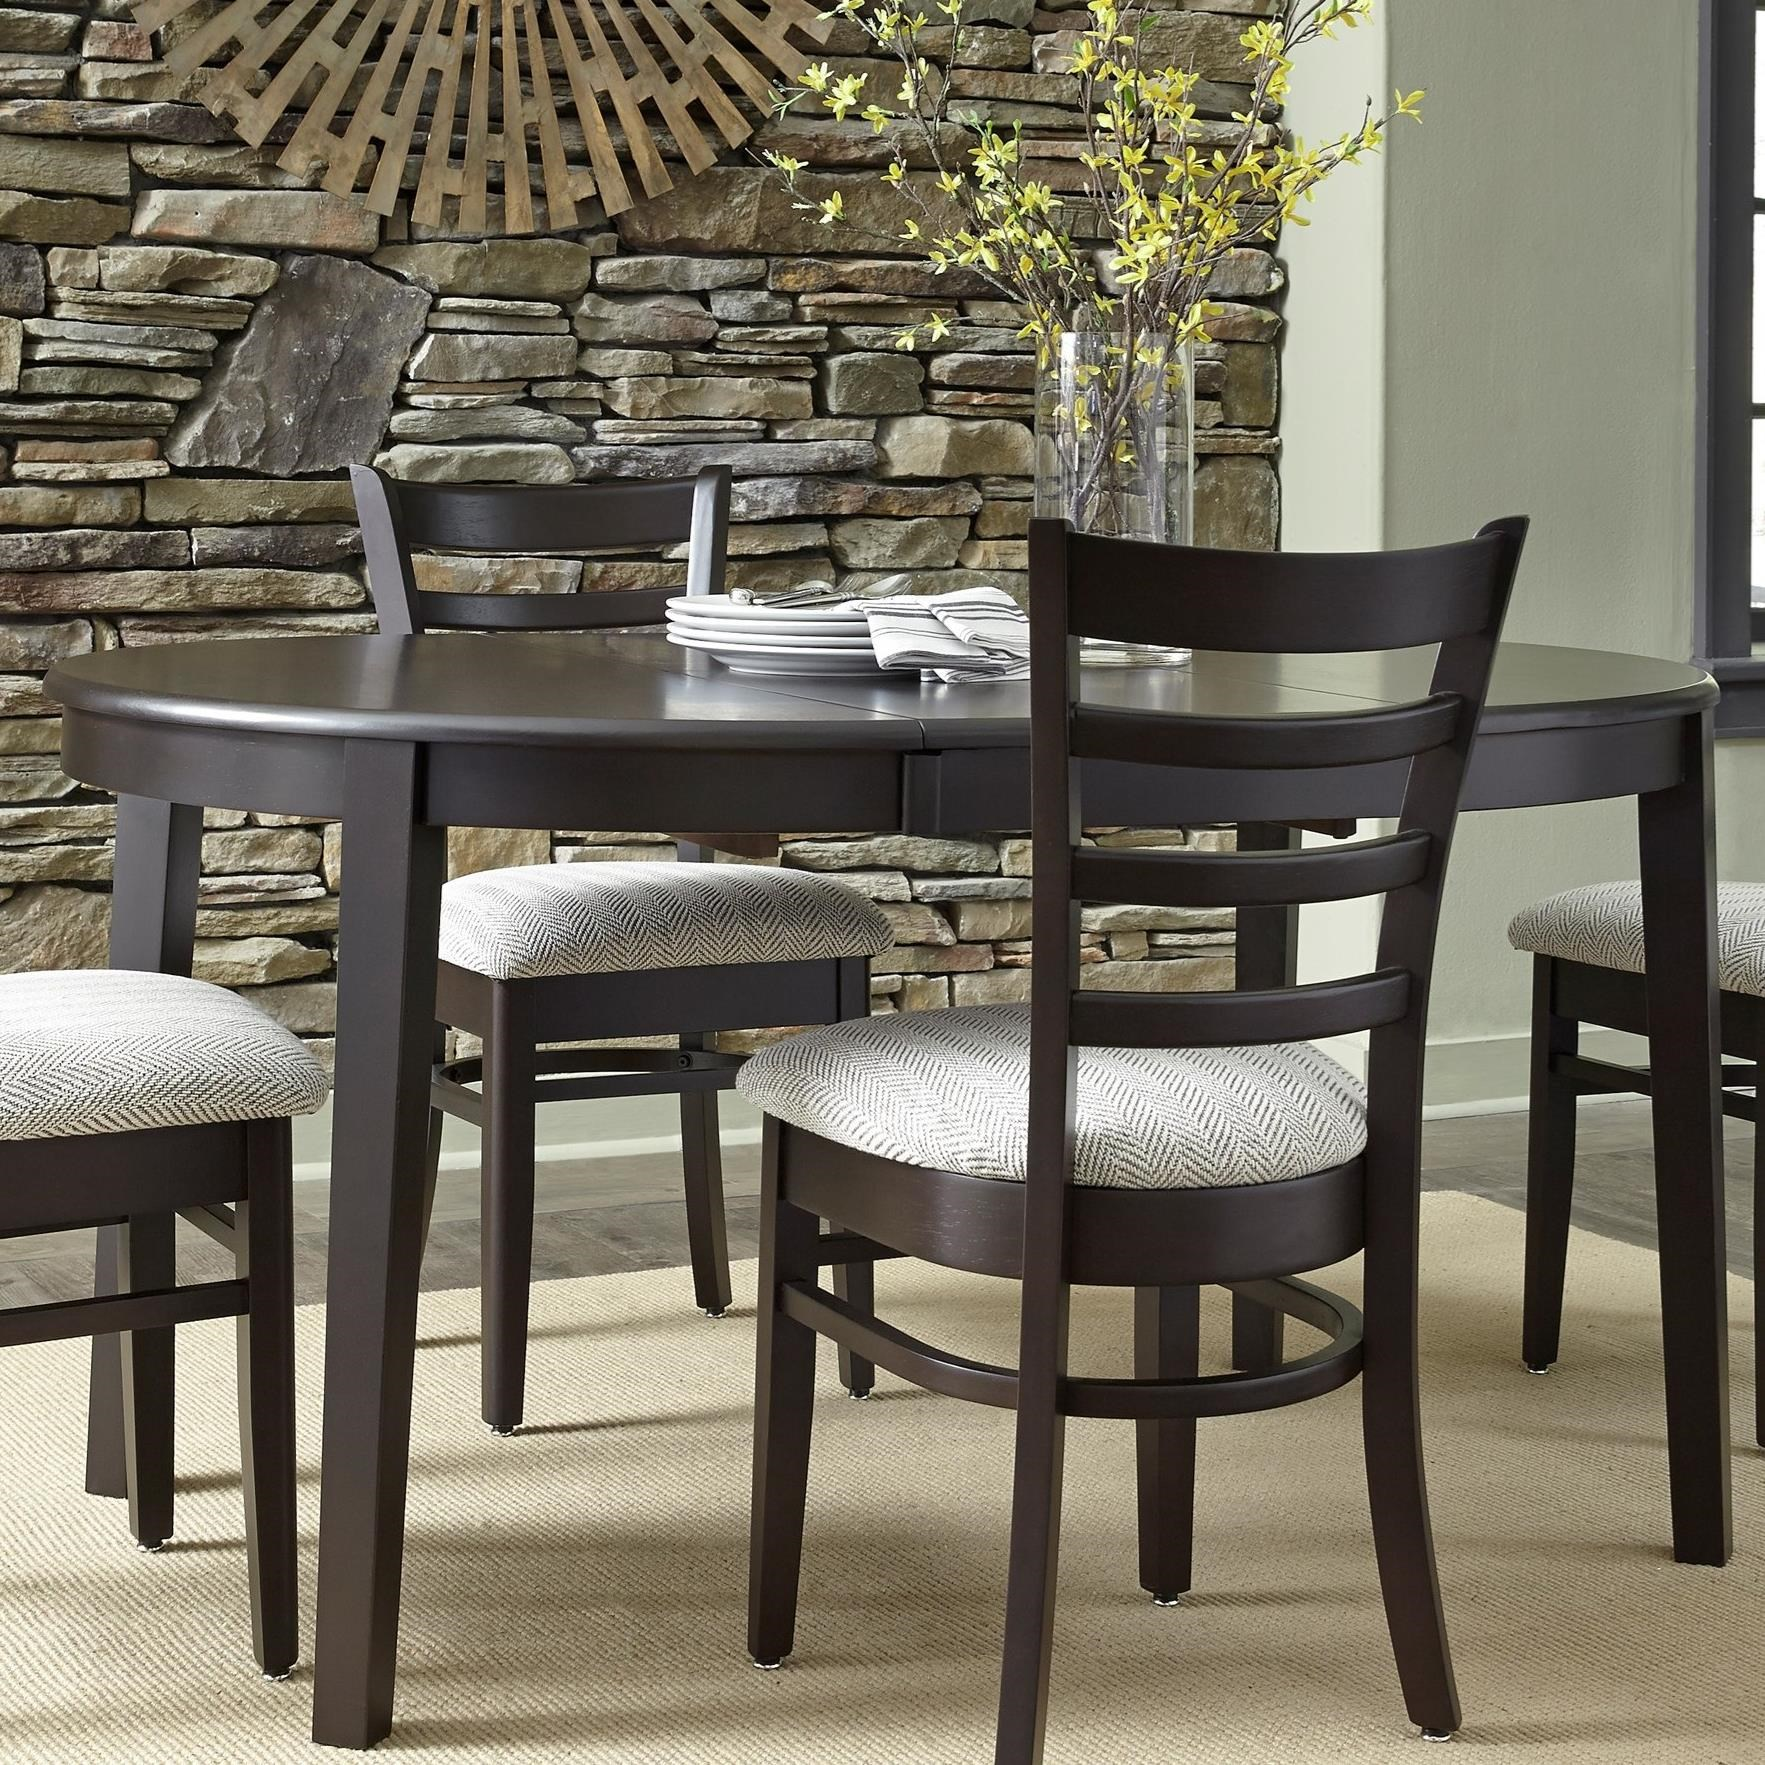 John thomas select dining emily 42 round table with butterfly leaf reeds furniture kitchen - Round kitchen table with butterfly leaf ...